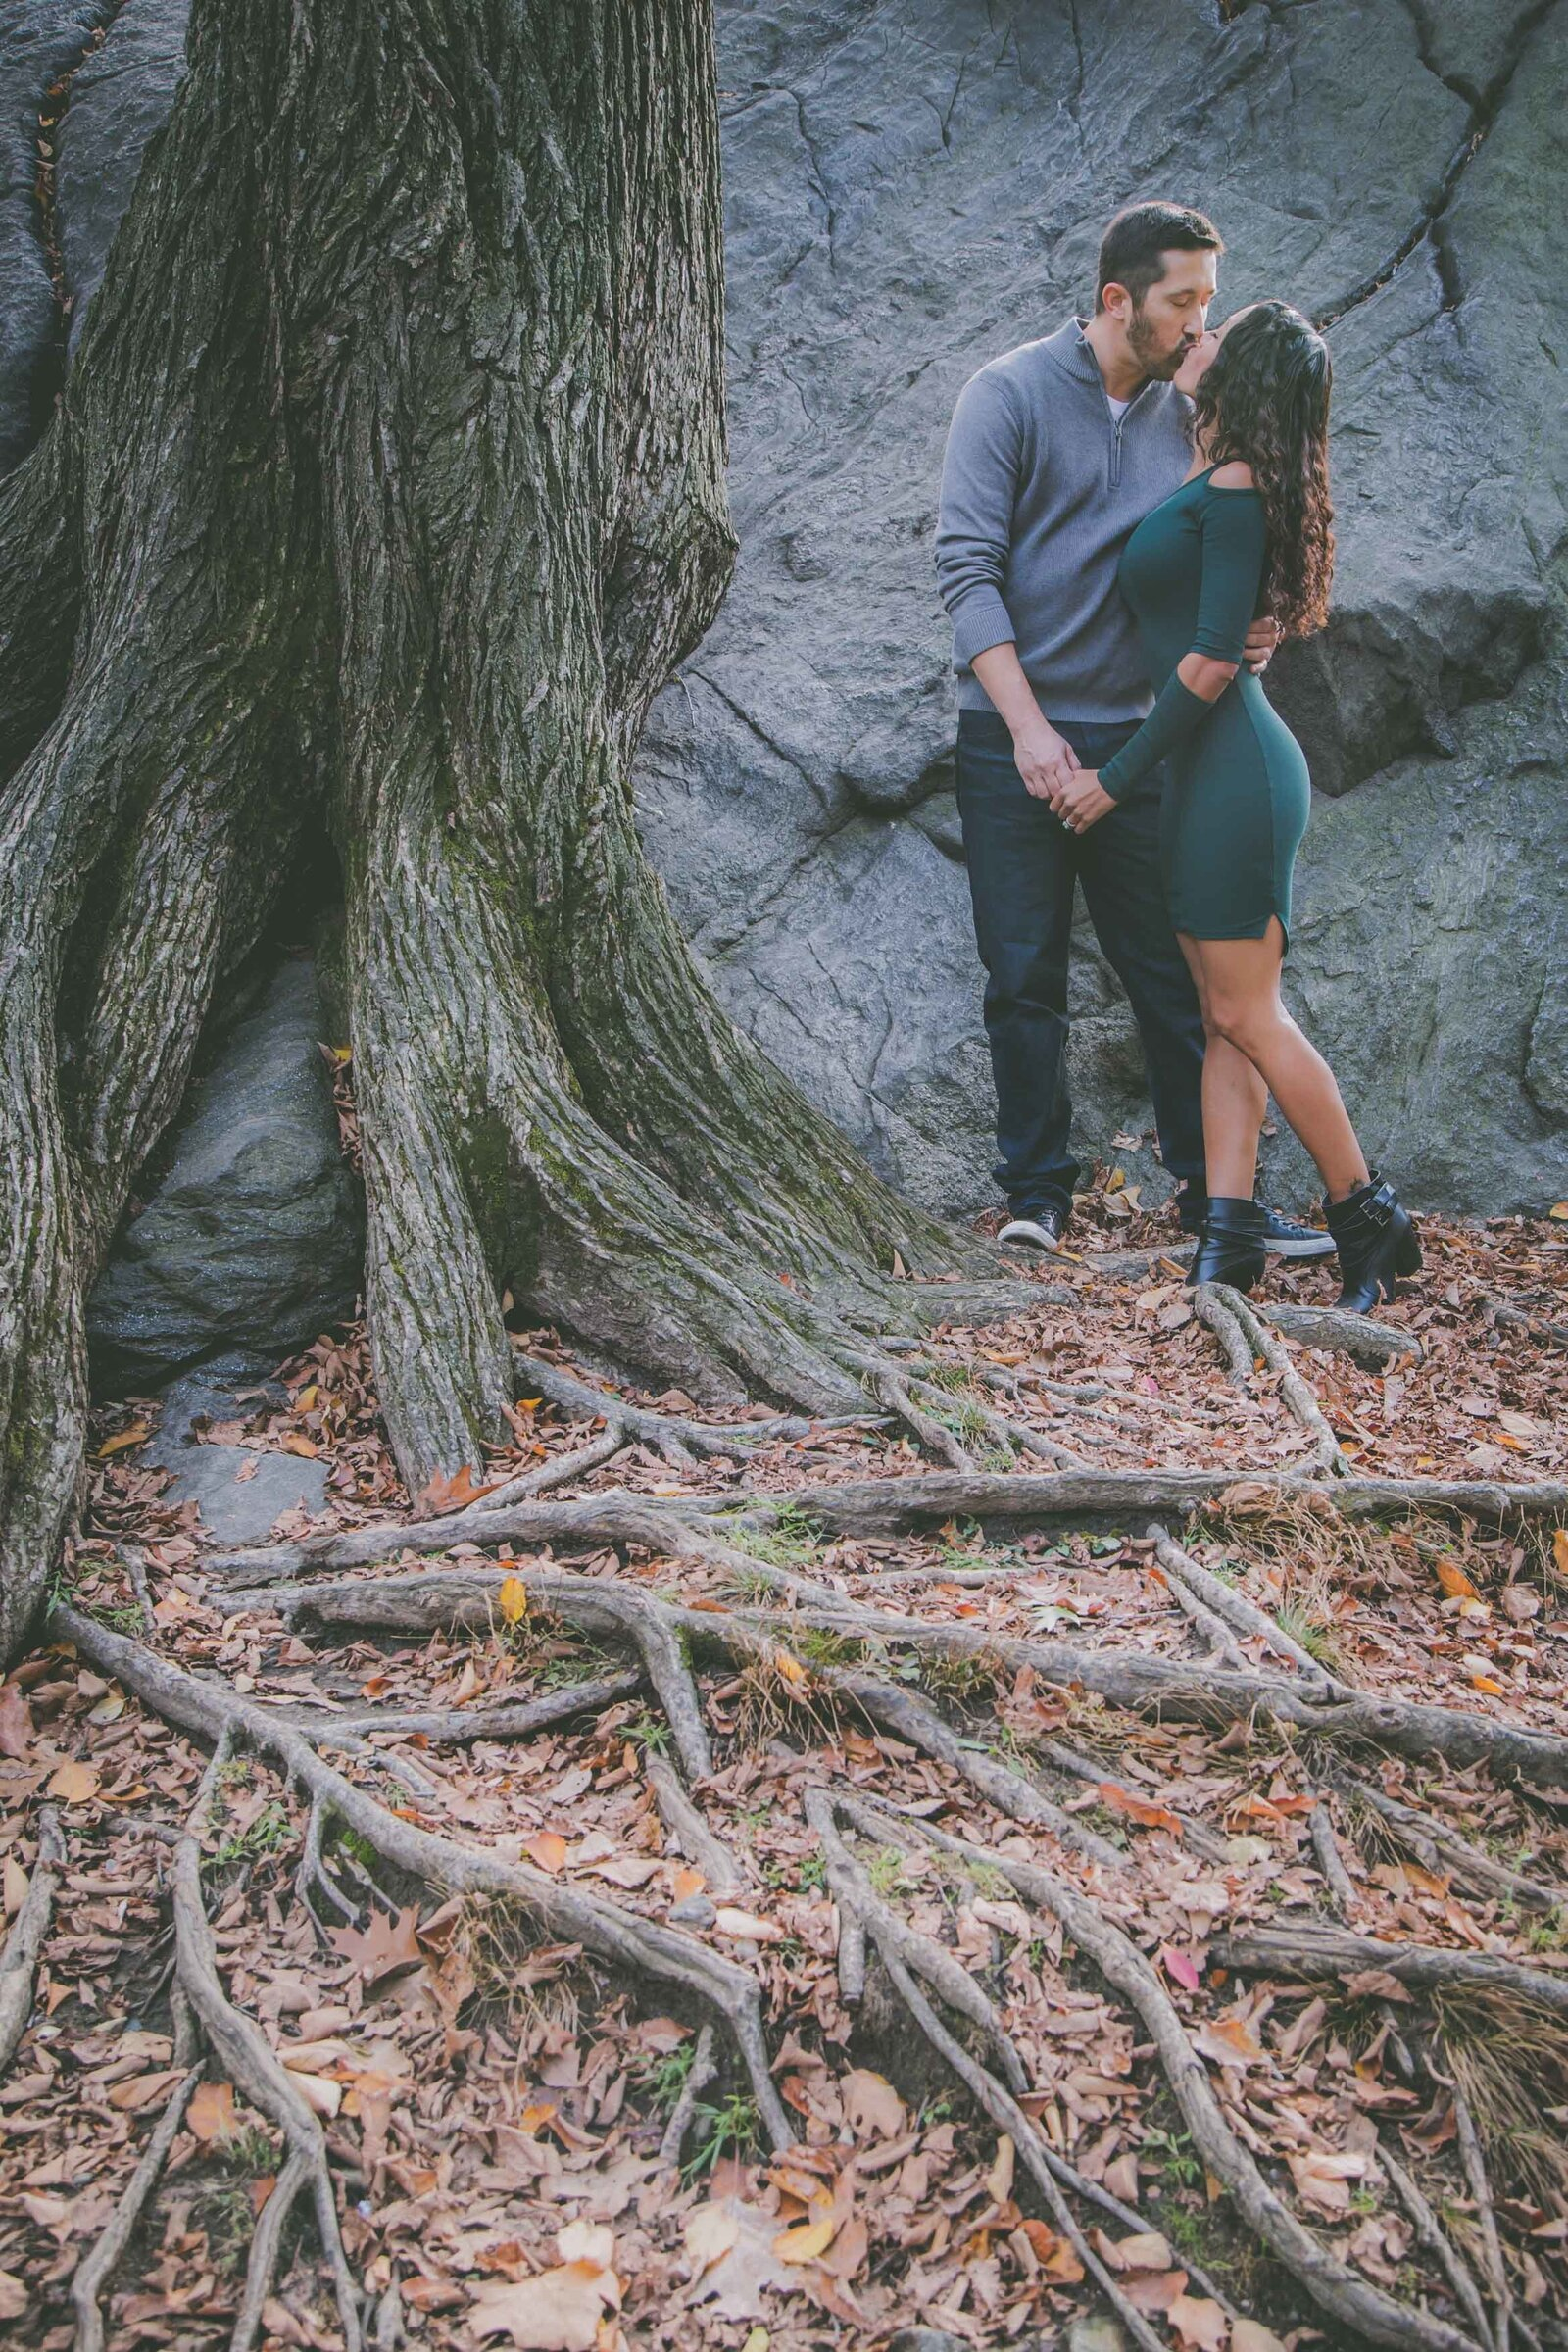 A couple kisses and hold hands by tree roots in Central Park.